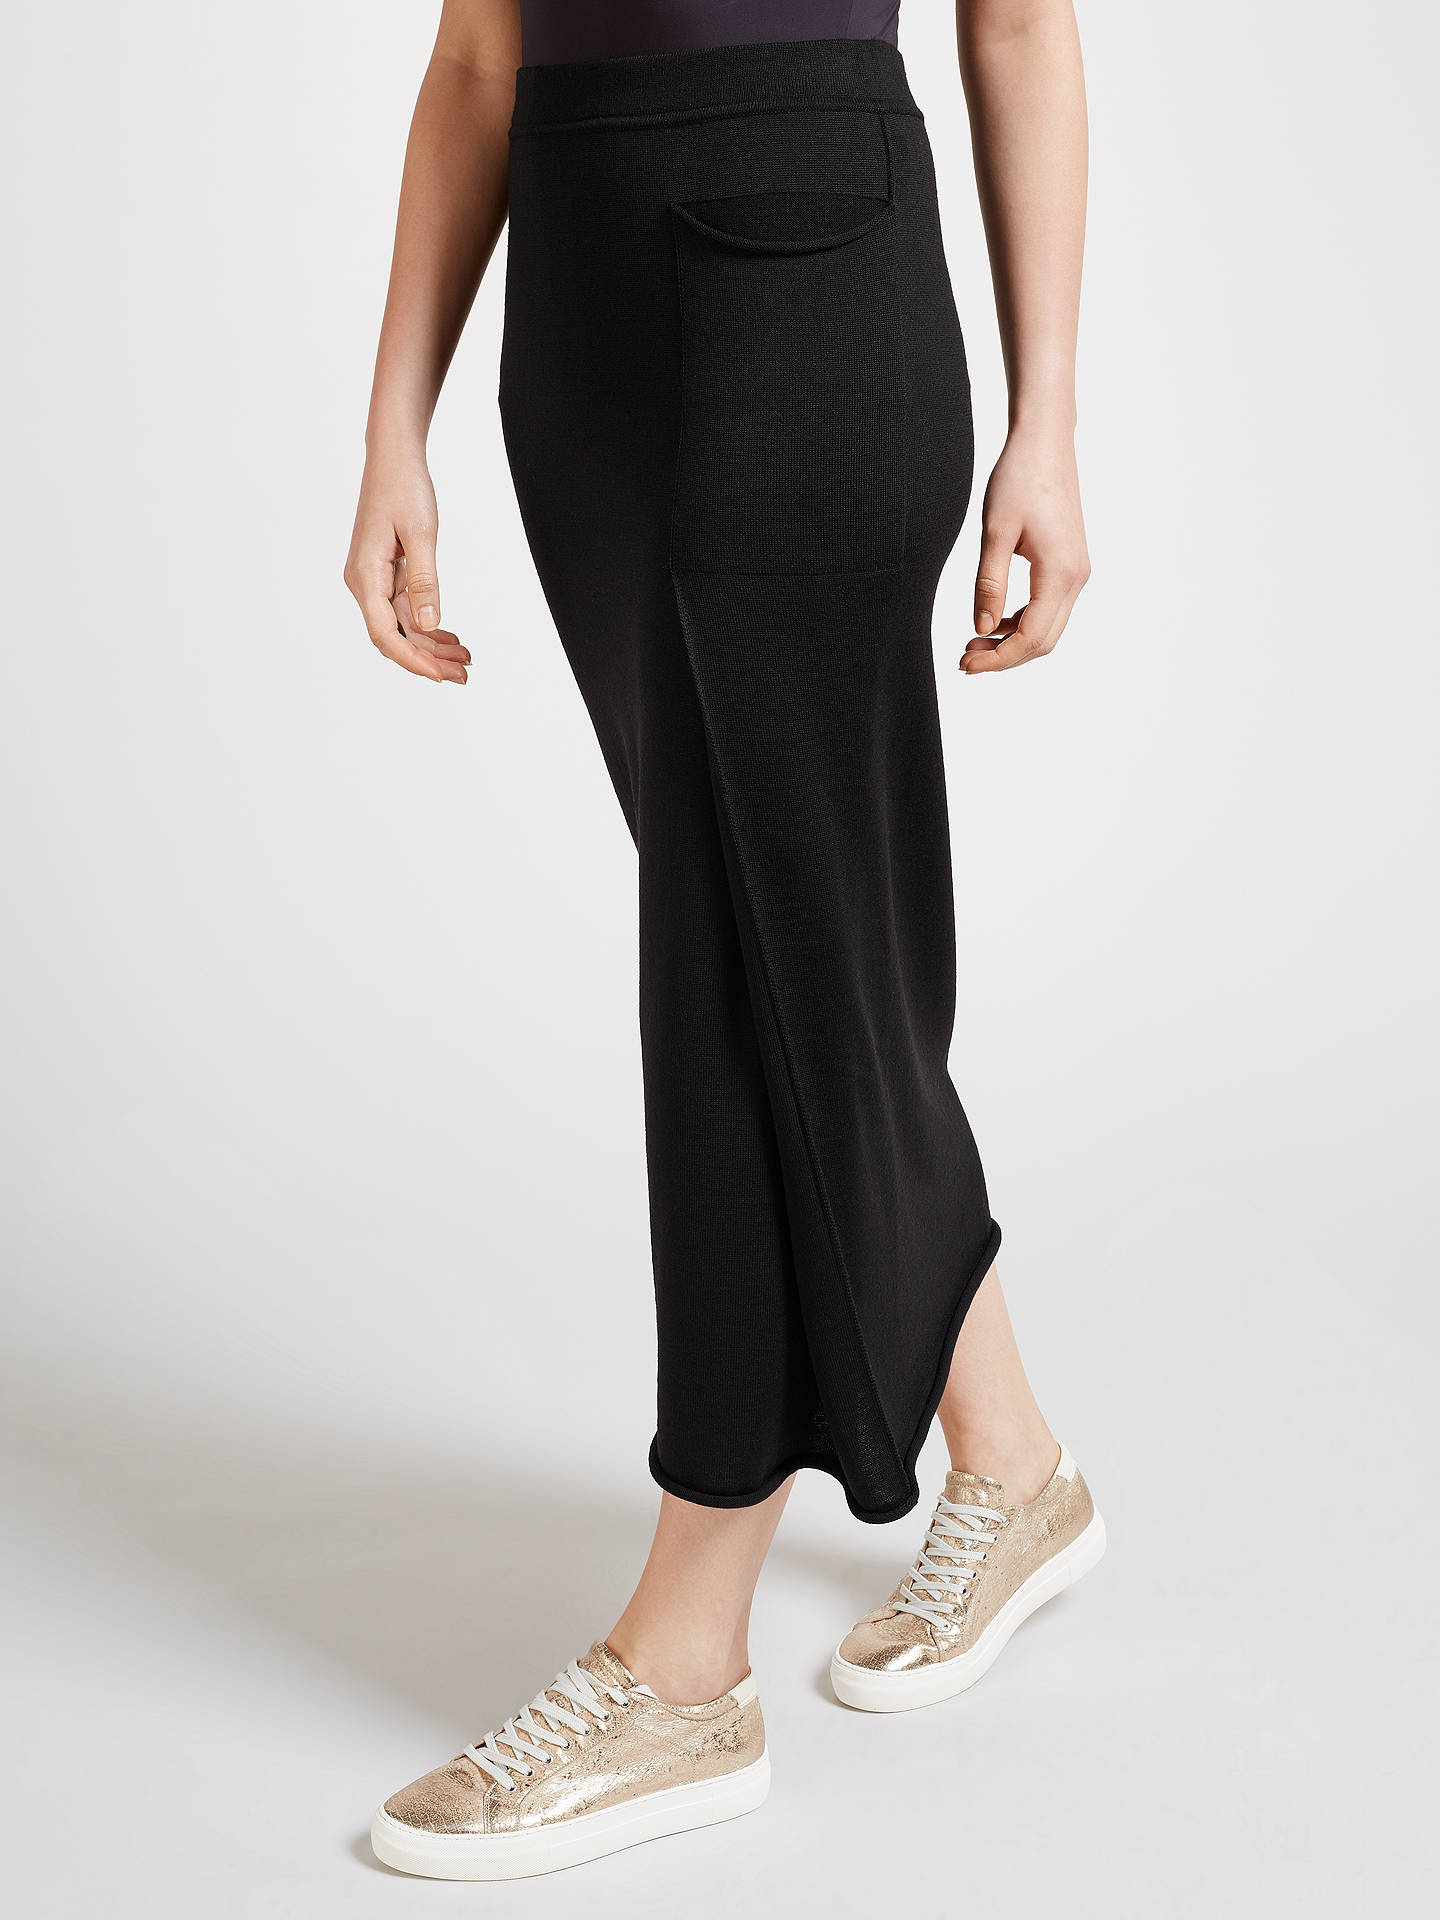 BuyCrea Concept Asymmetric Knitted Skirt, Black, 10 Online at johnlewis.com